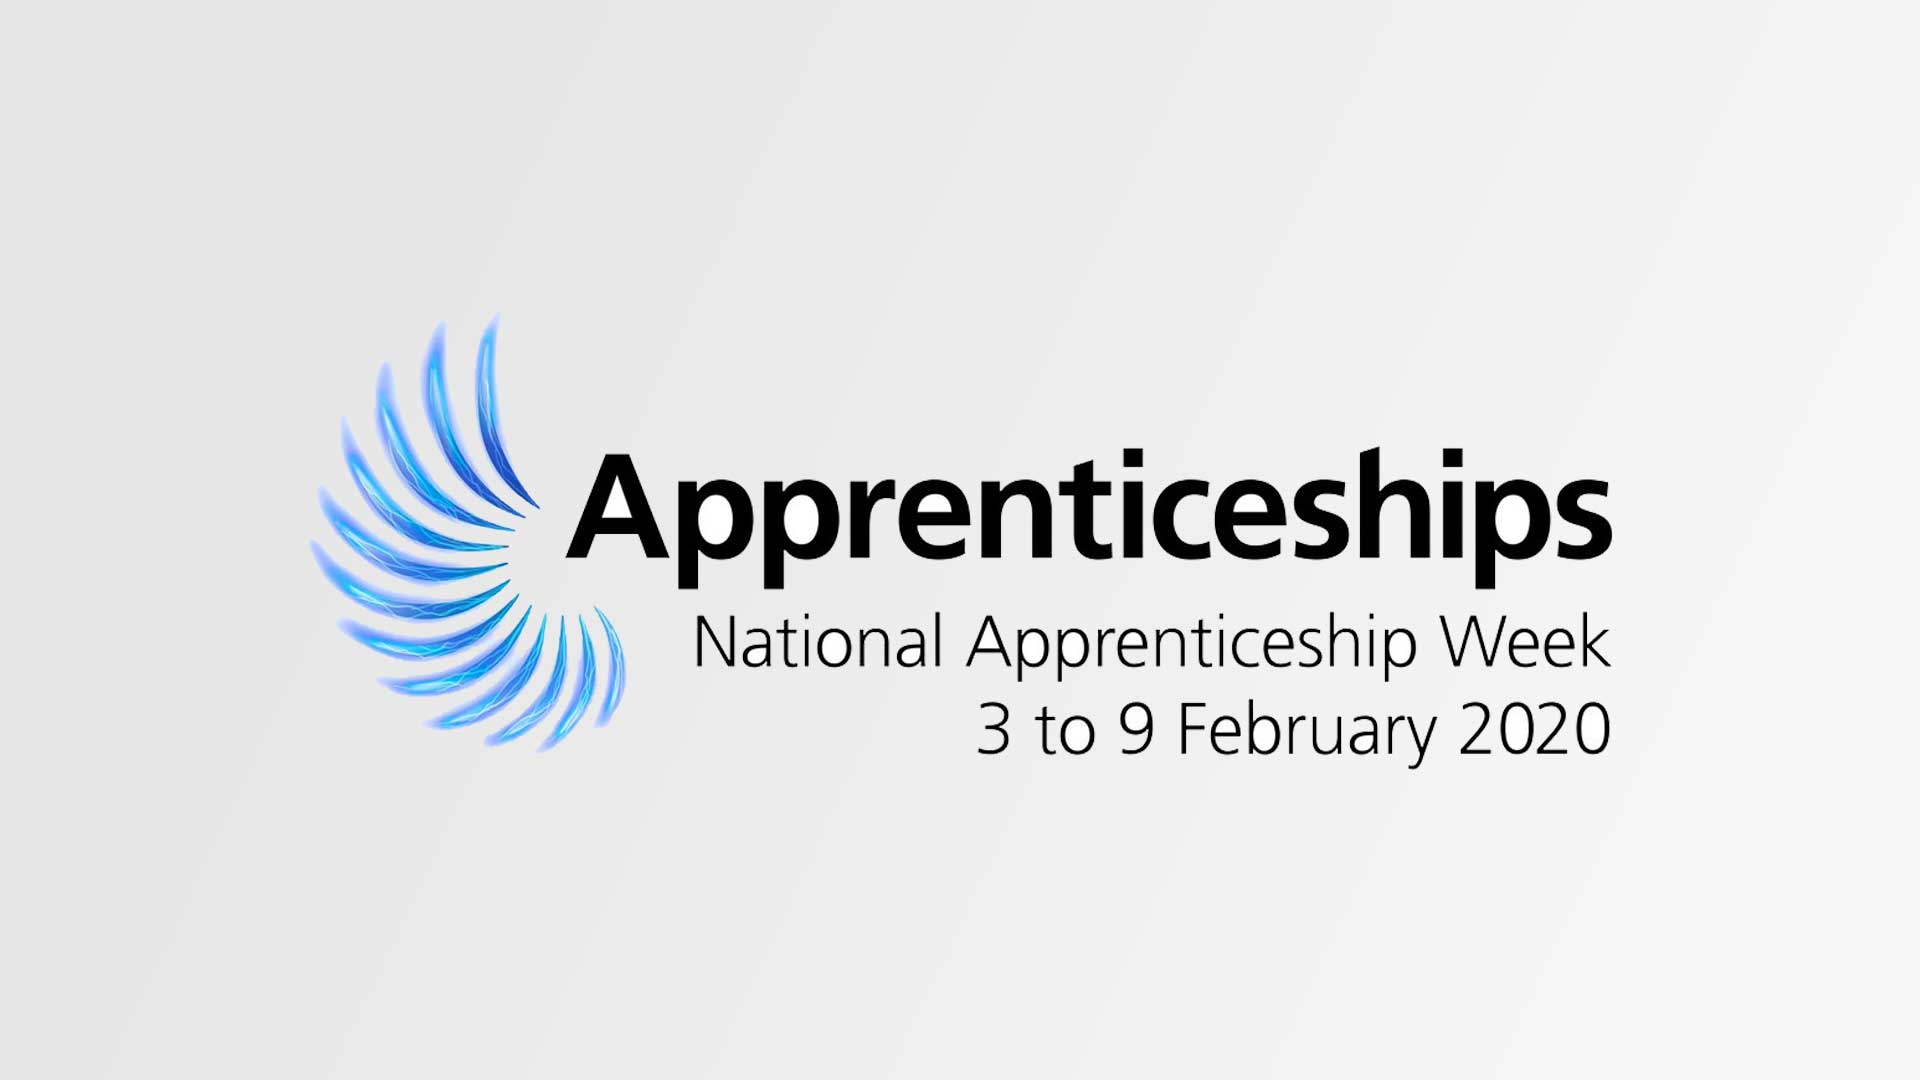 Celebrating National Apprenticeship Week